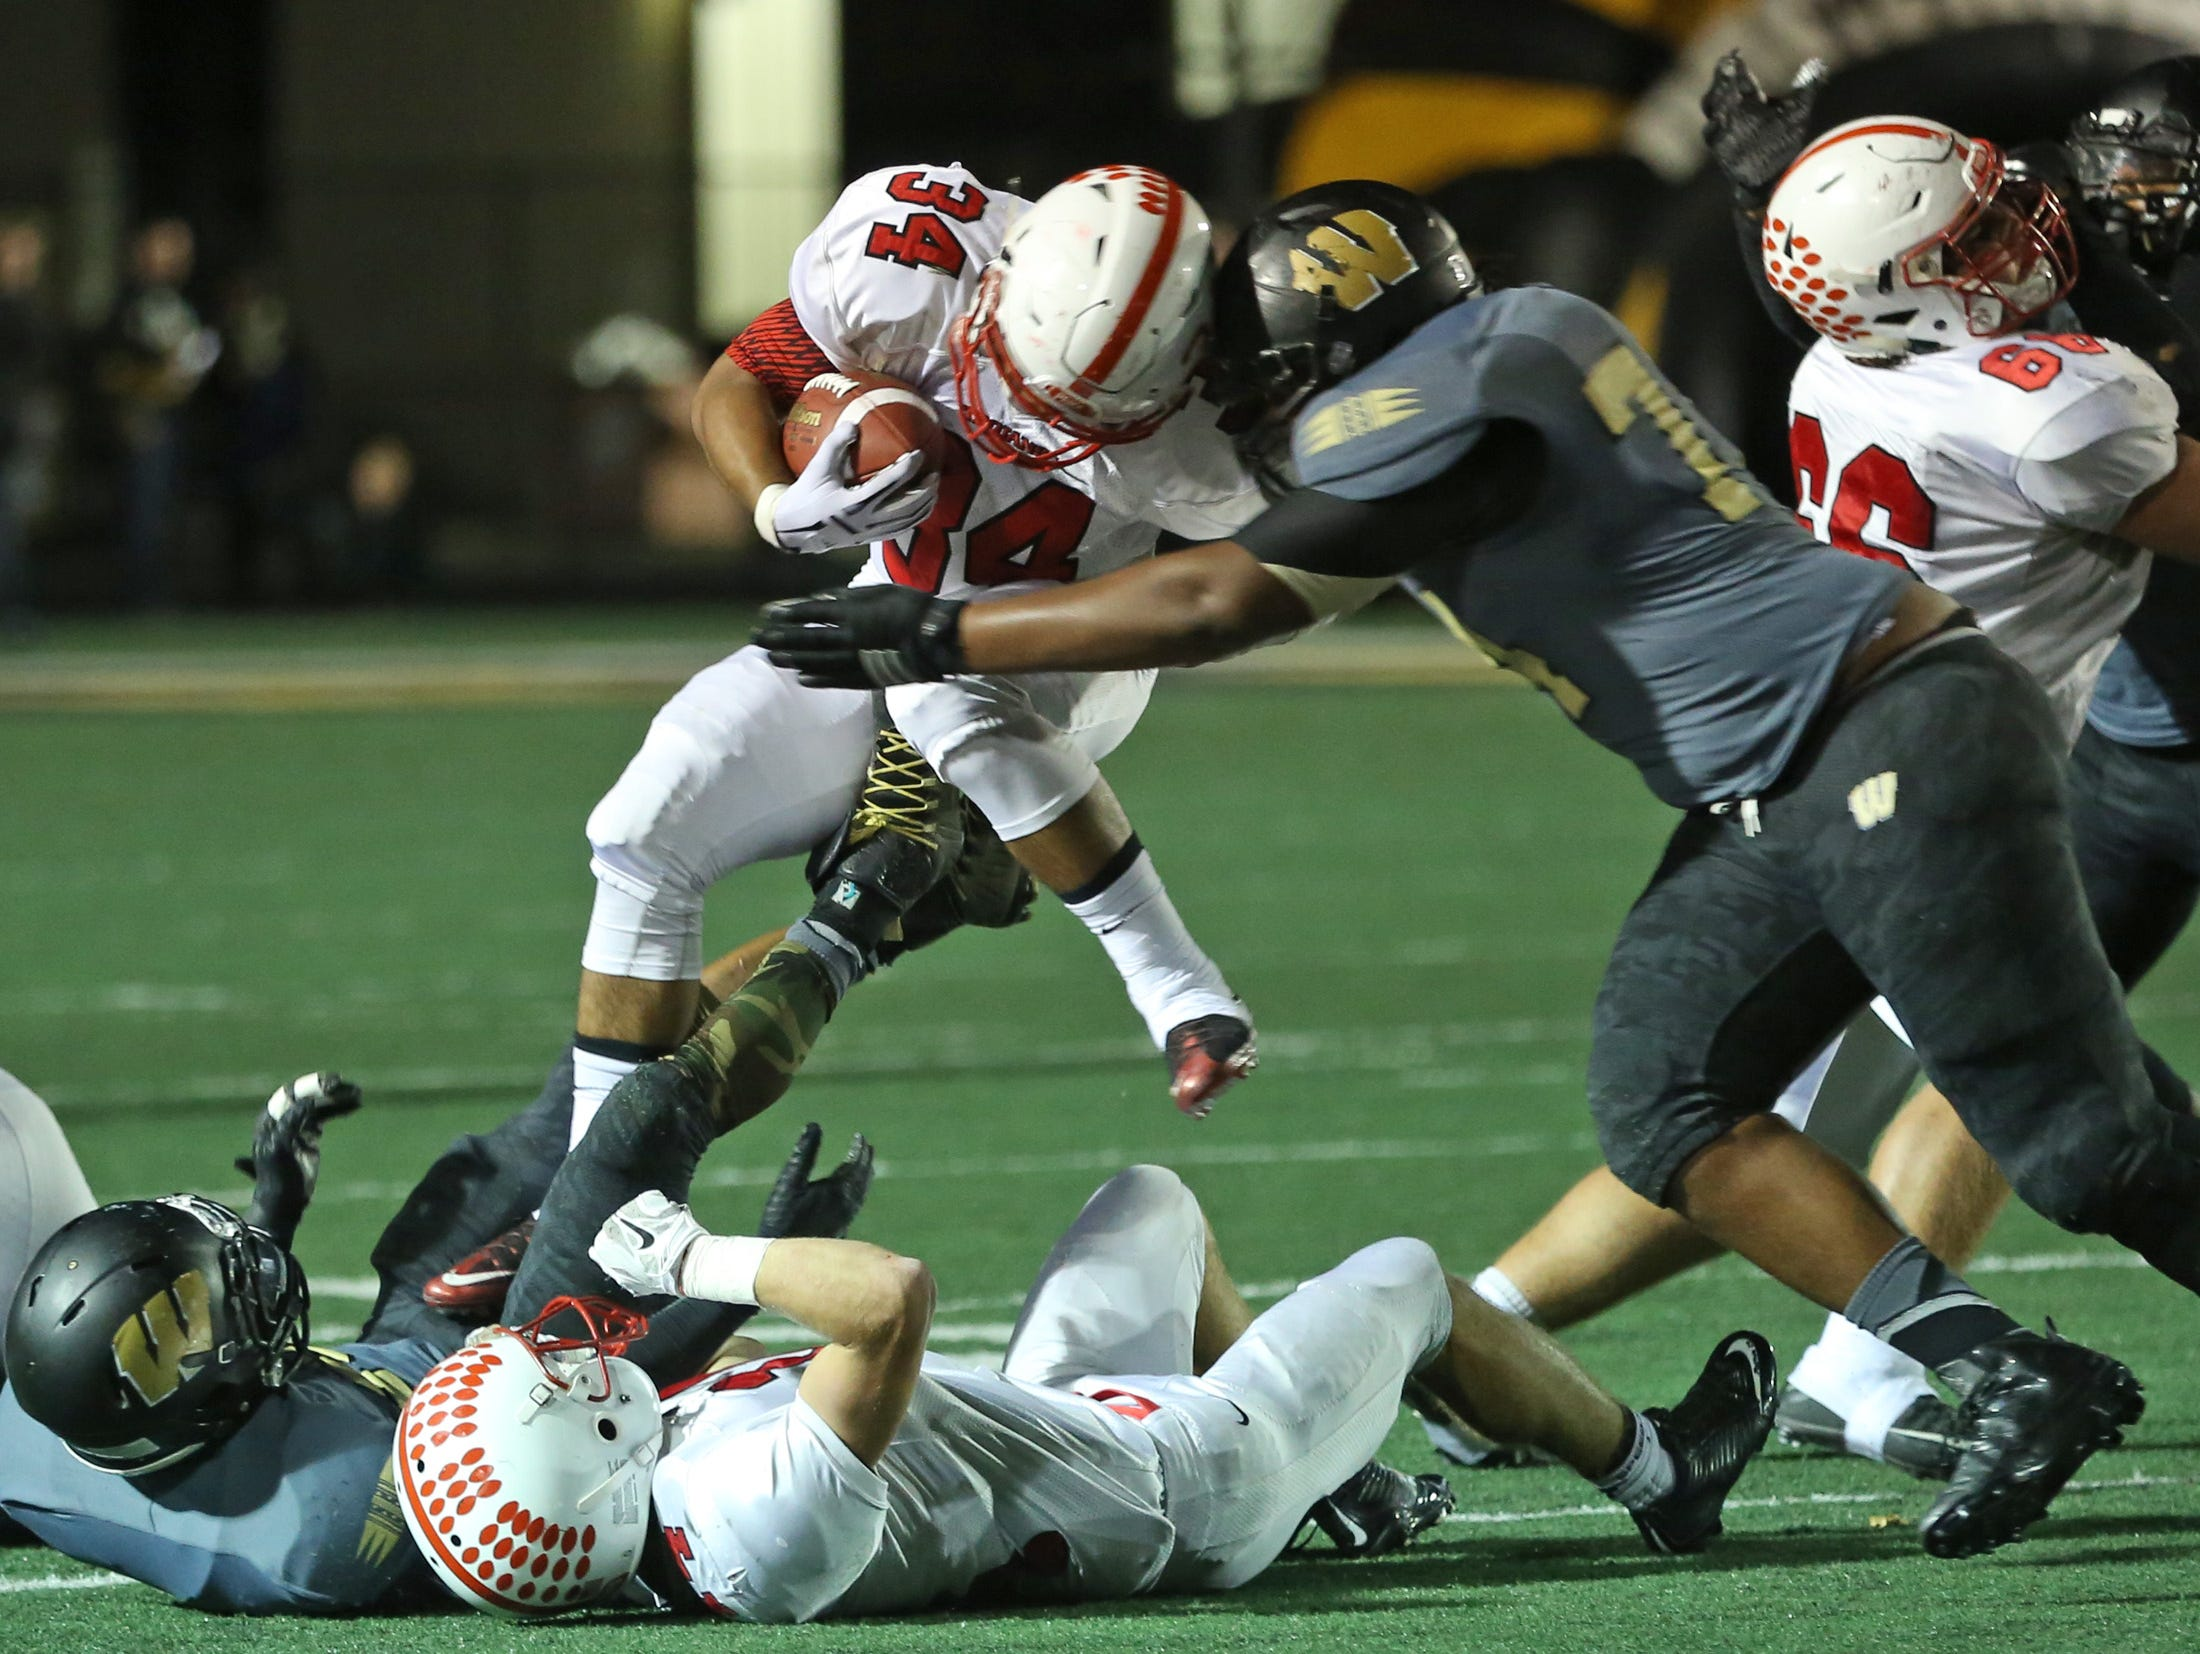 Center Grove's Triston Clark carries the ball against Warren Central Friday November 6, 2015 during the 6A Regionals at Warren Central.